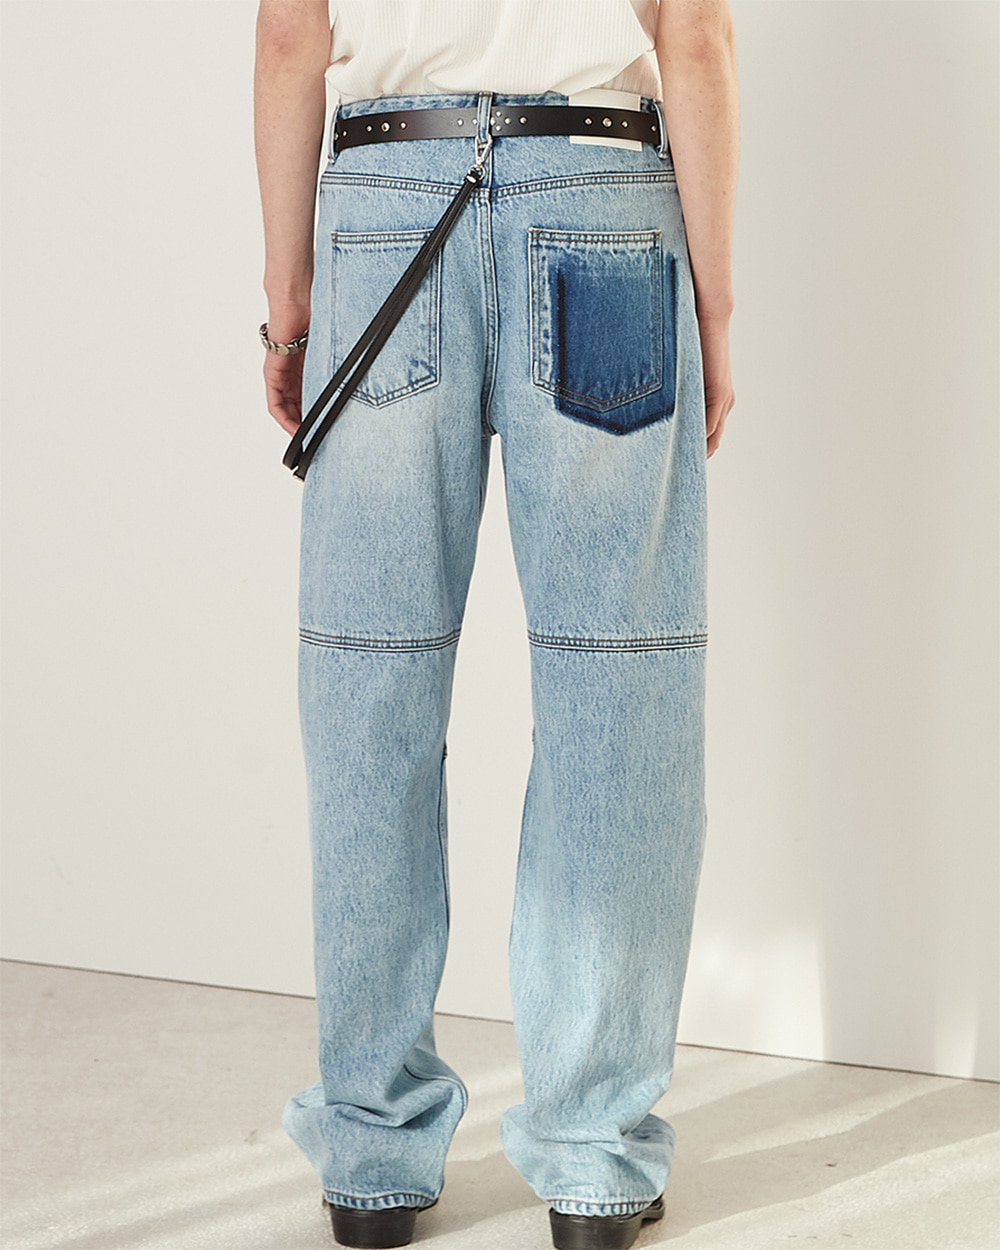 HALEINE알렌느 LIGHTBLUE semi wide stone washing jean(NB001)